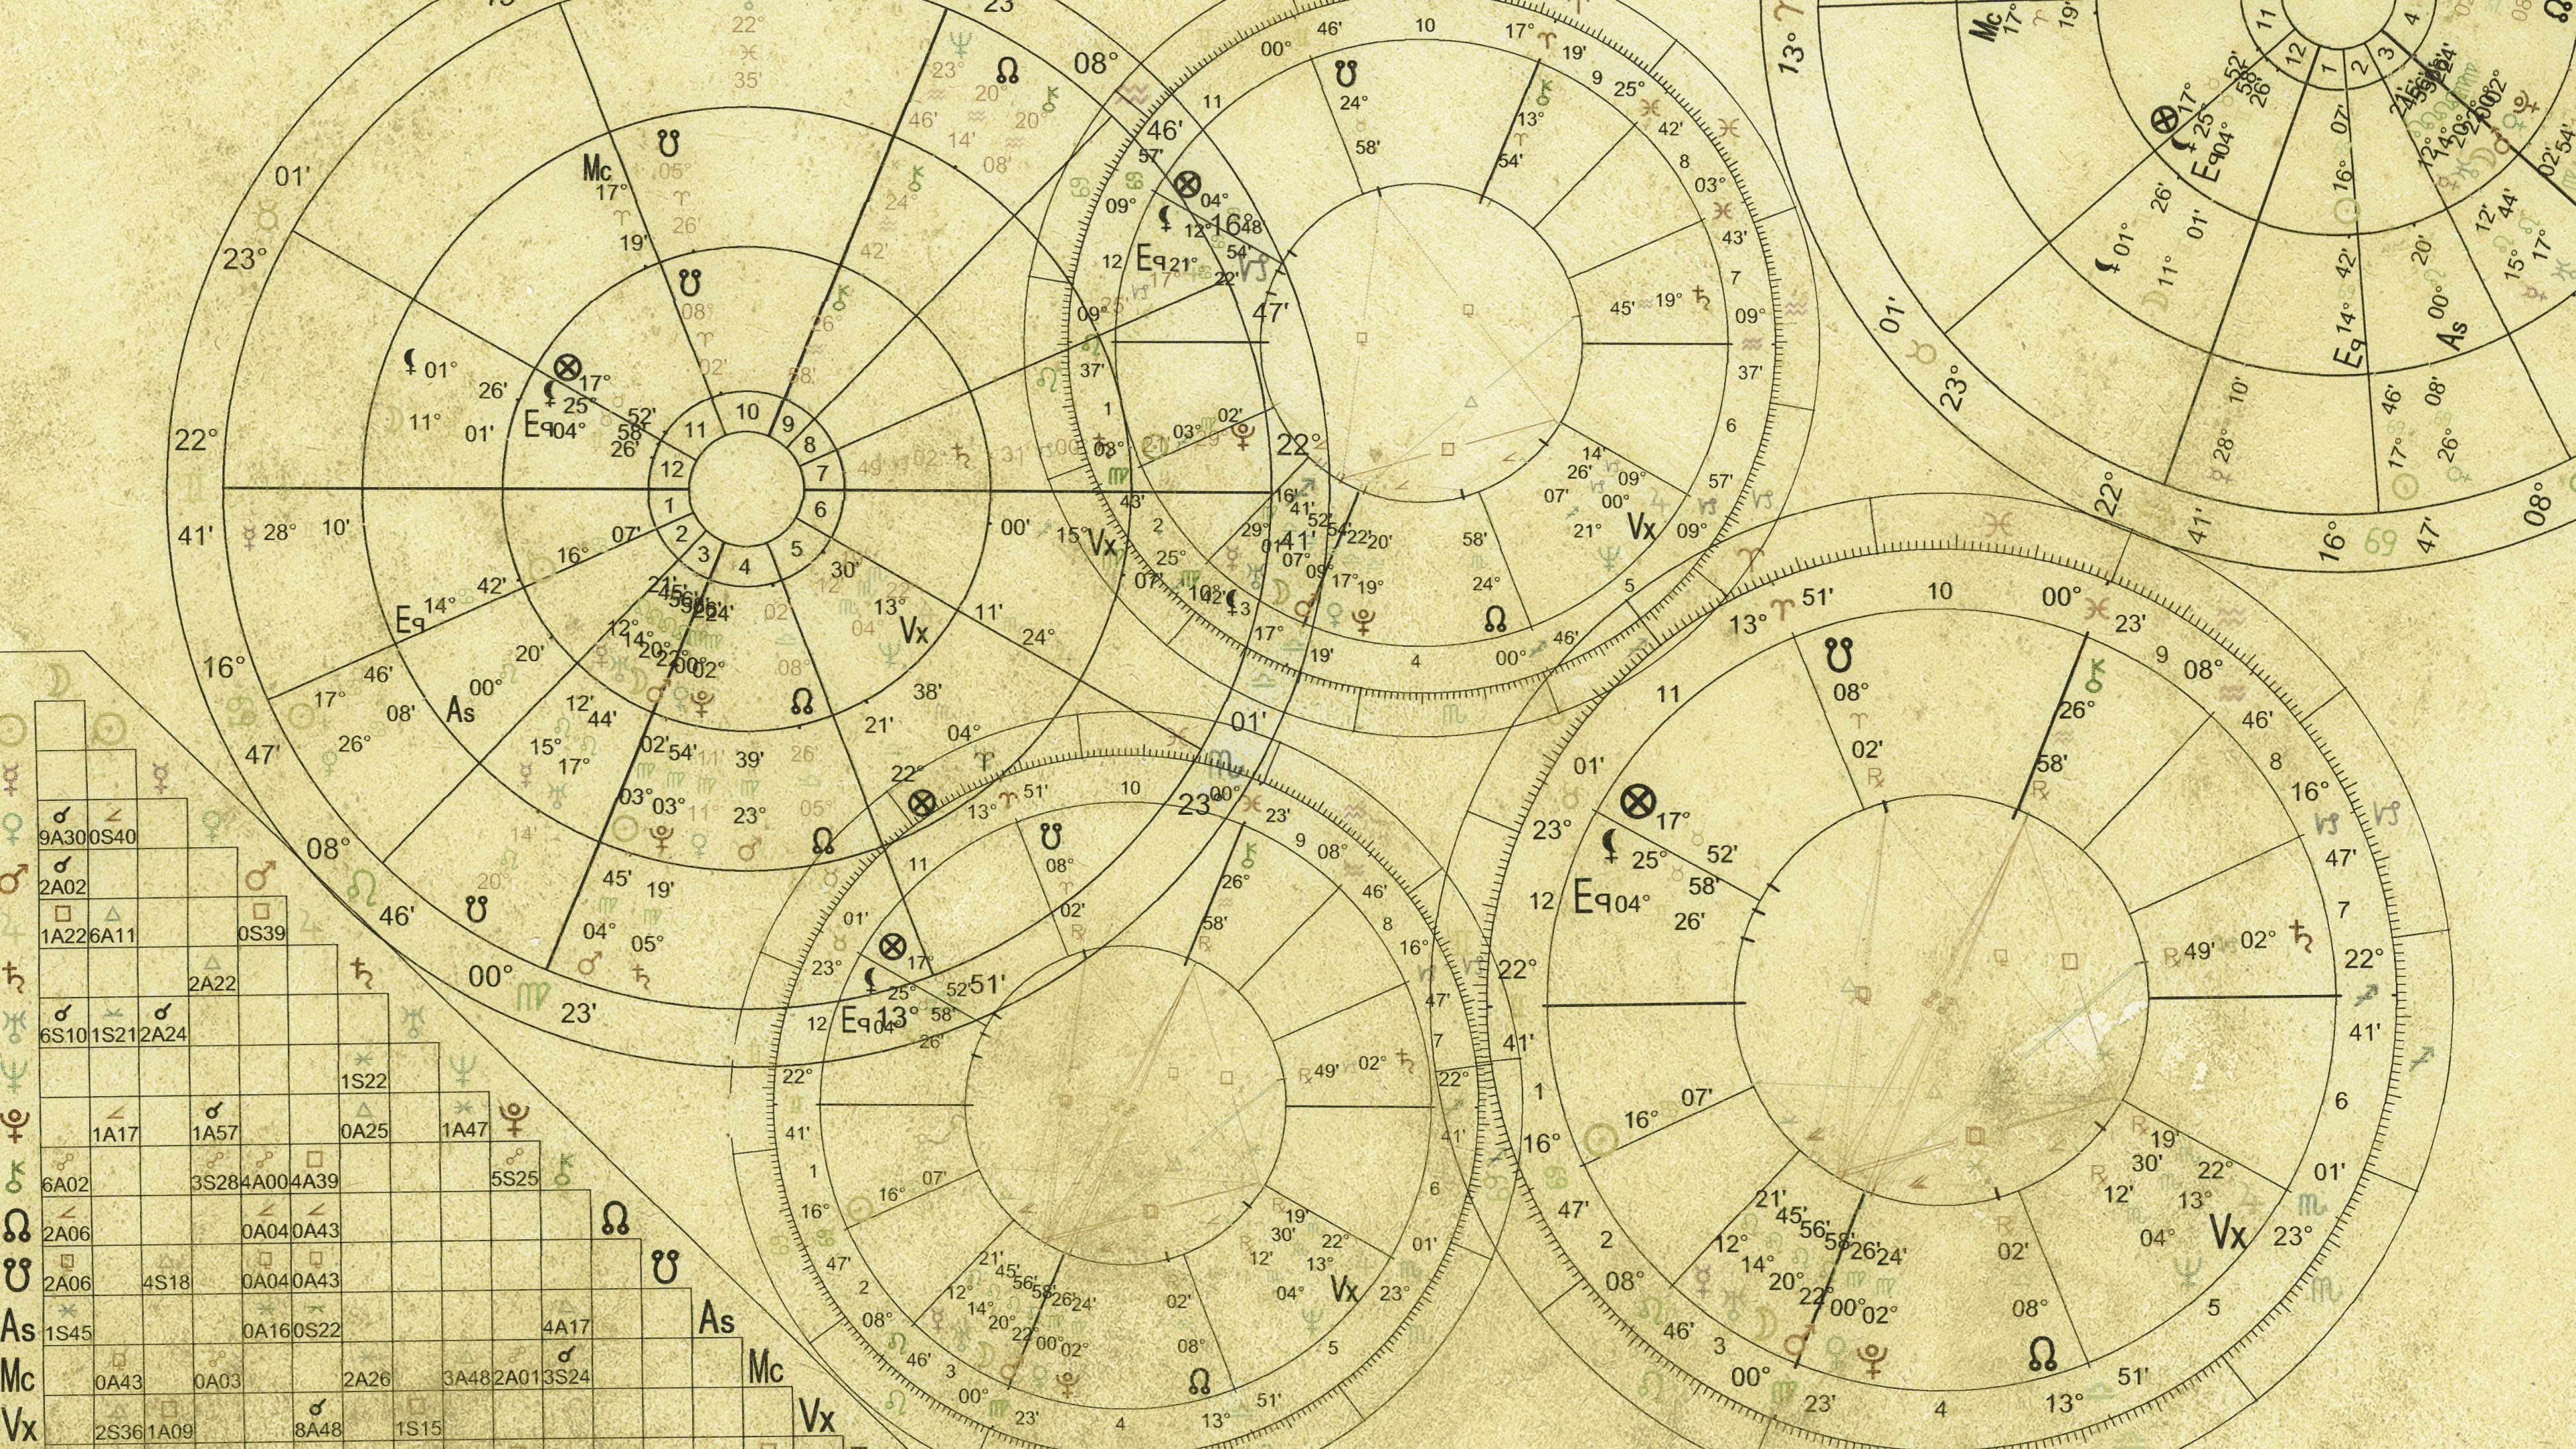 The Twelve Houses of Astrology